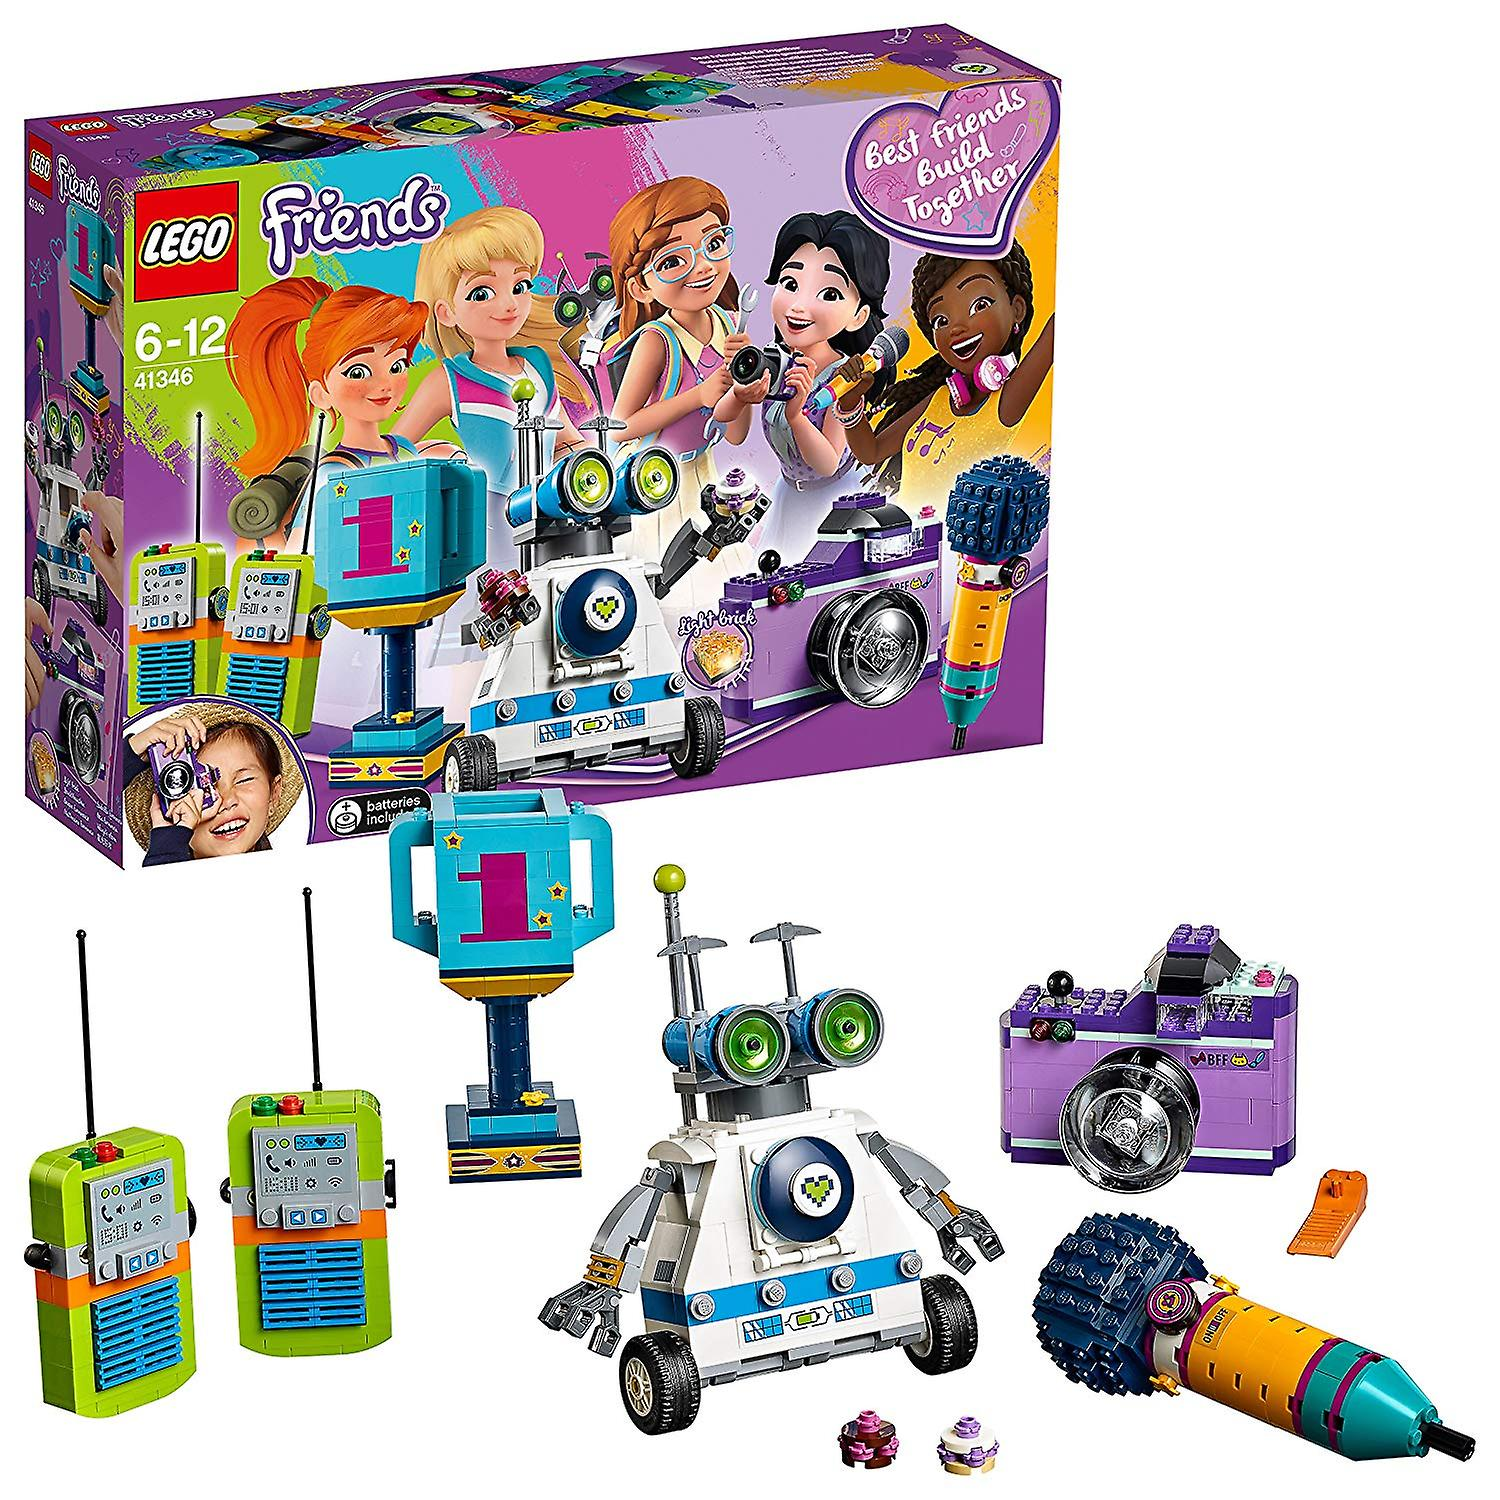 Lego Friends 41346 Heartlake Friendship Box Set